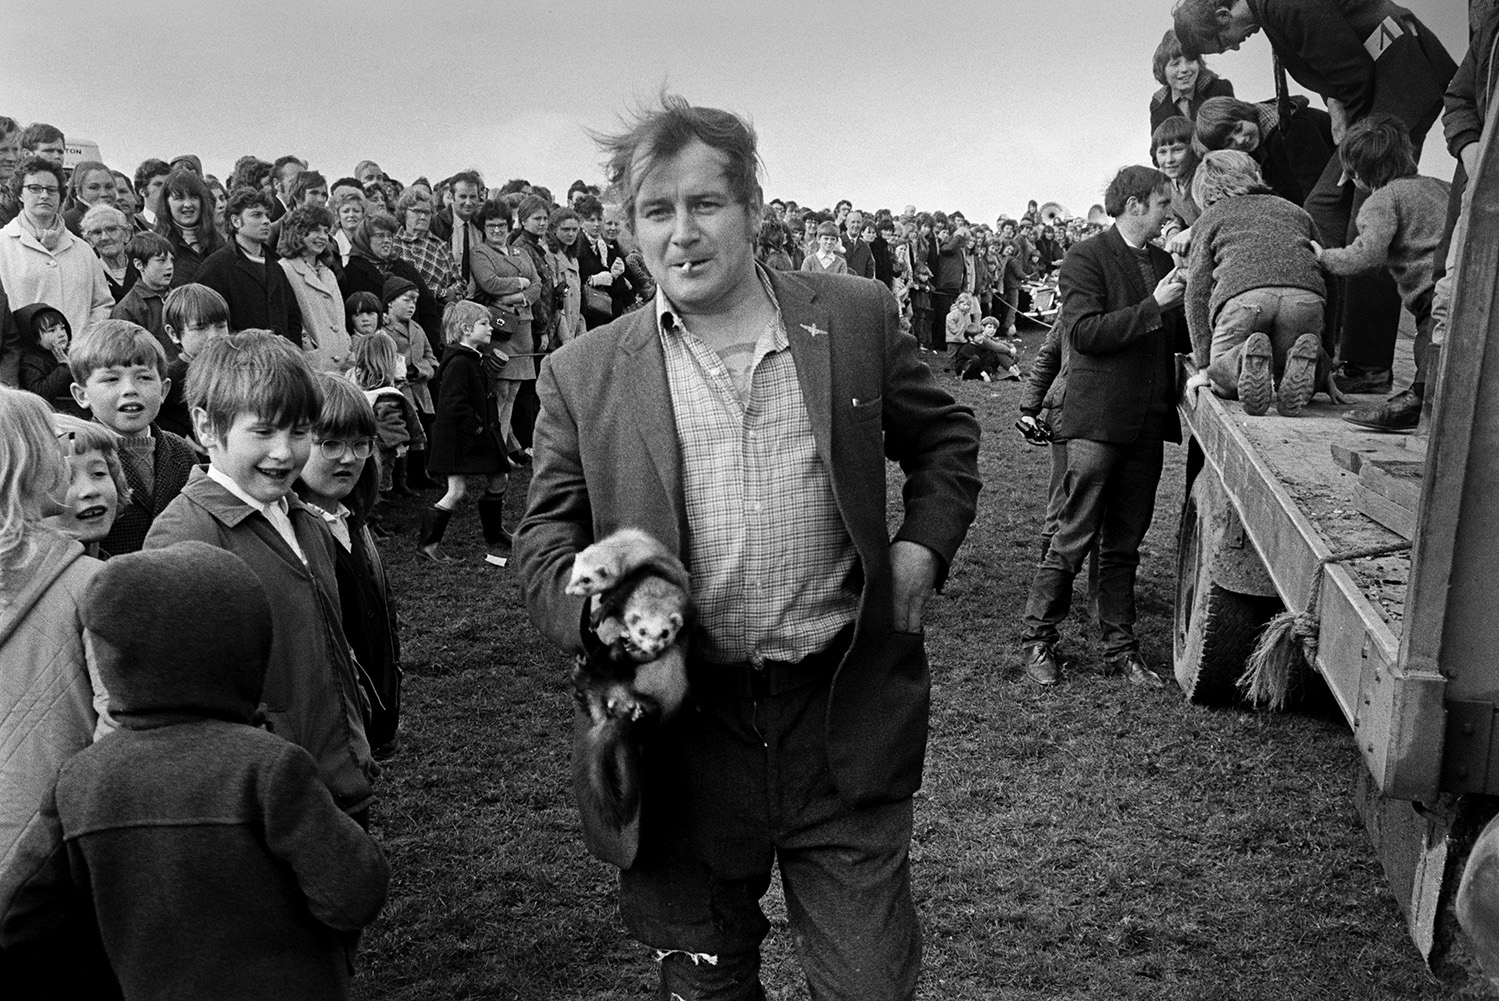 A man holding two ferrets in front of a crowd of spectators at a'Man Powered Flight' competition in a field at Crowbeare. Children are looking at the ferrets and the man is smoking a cigarette.